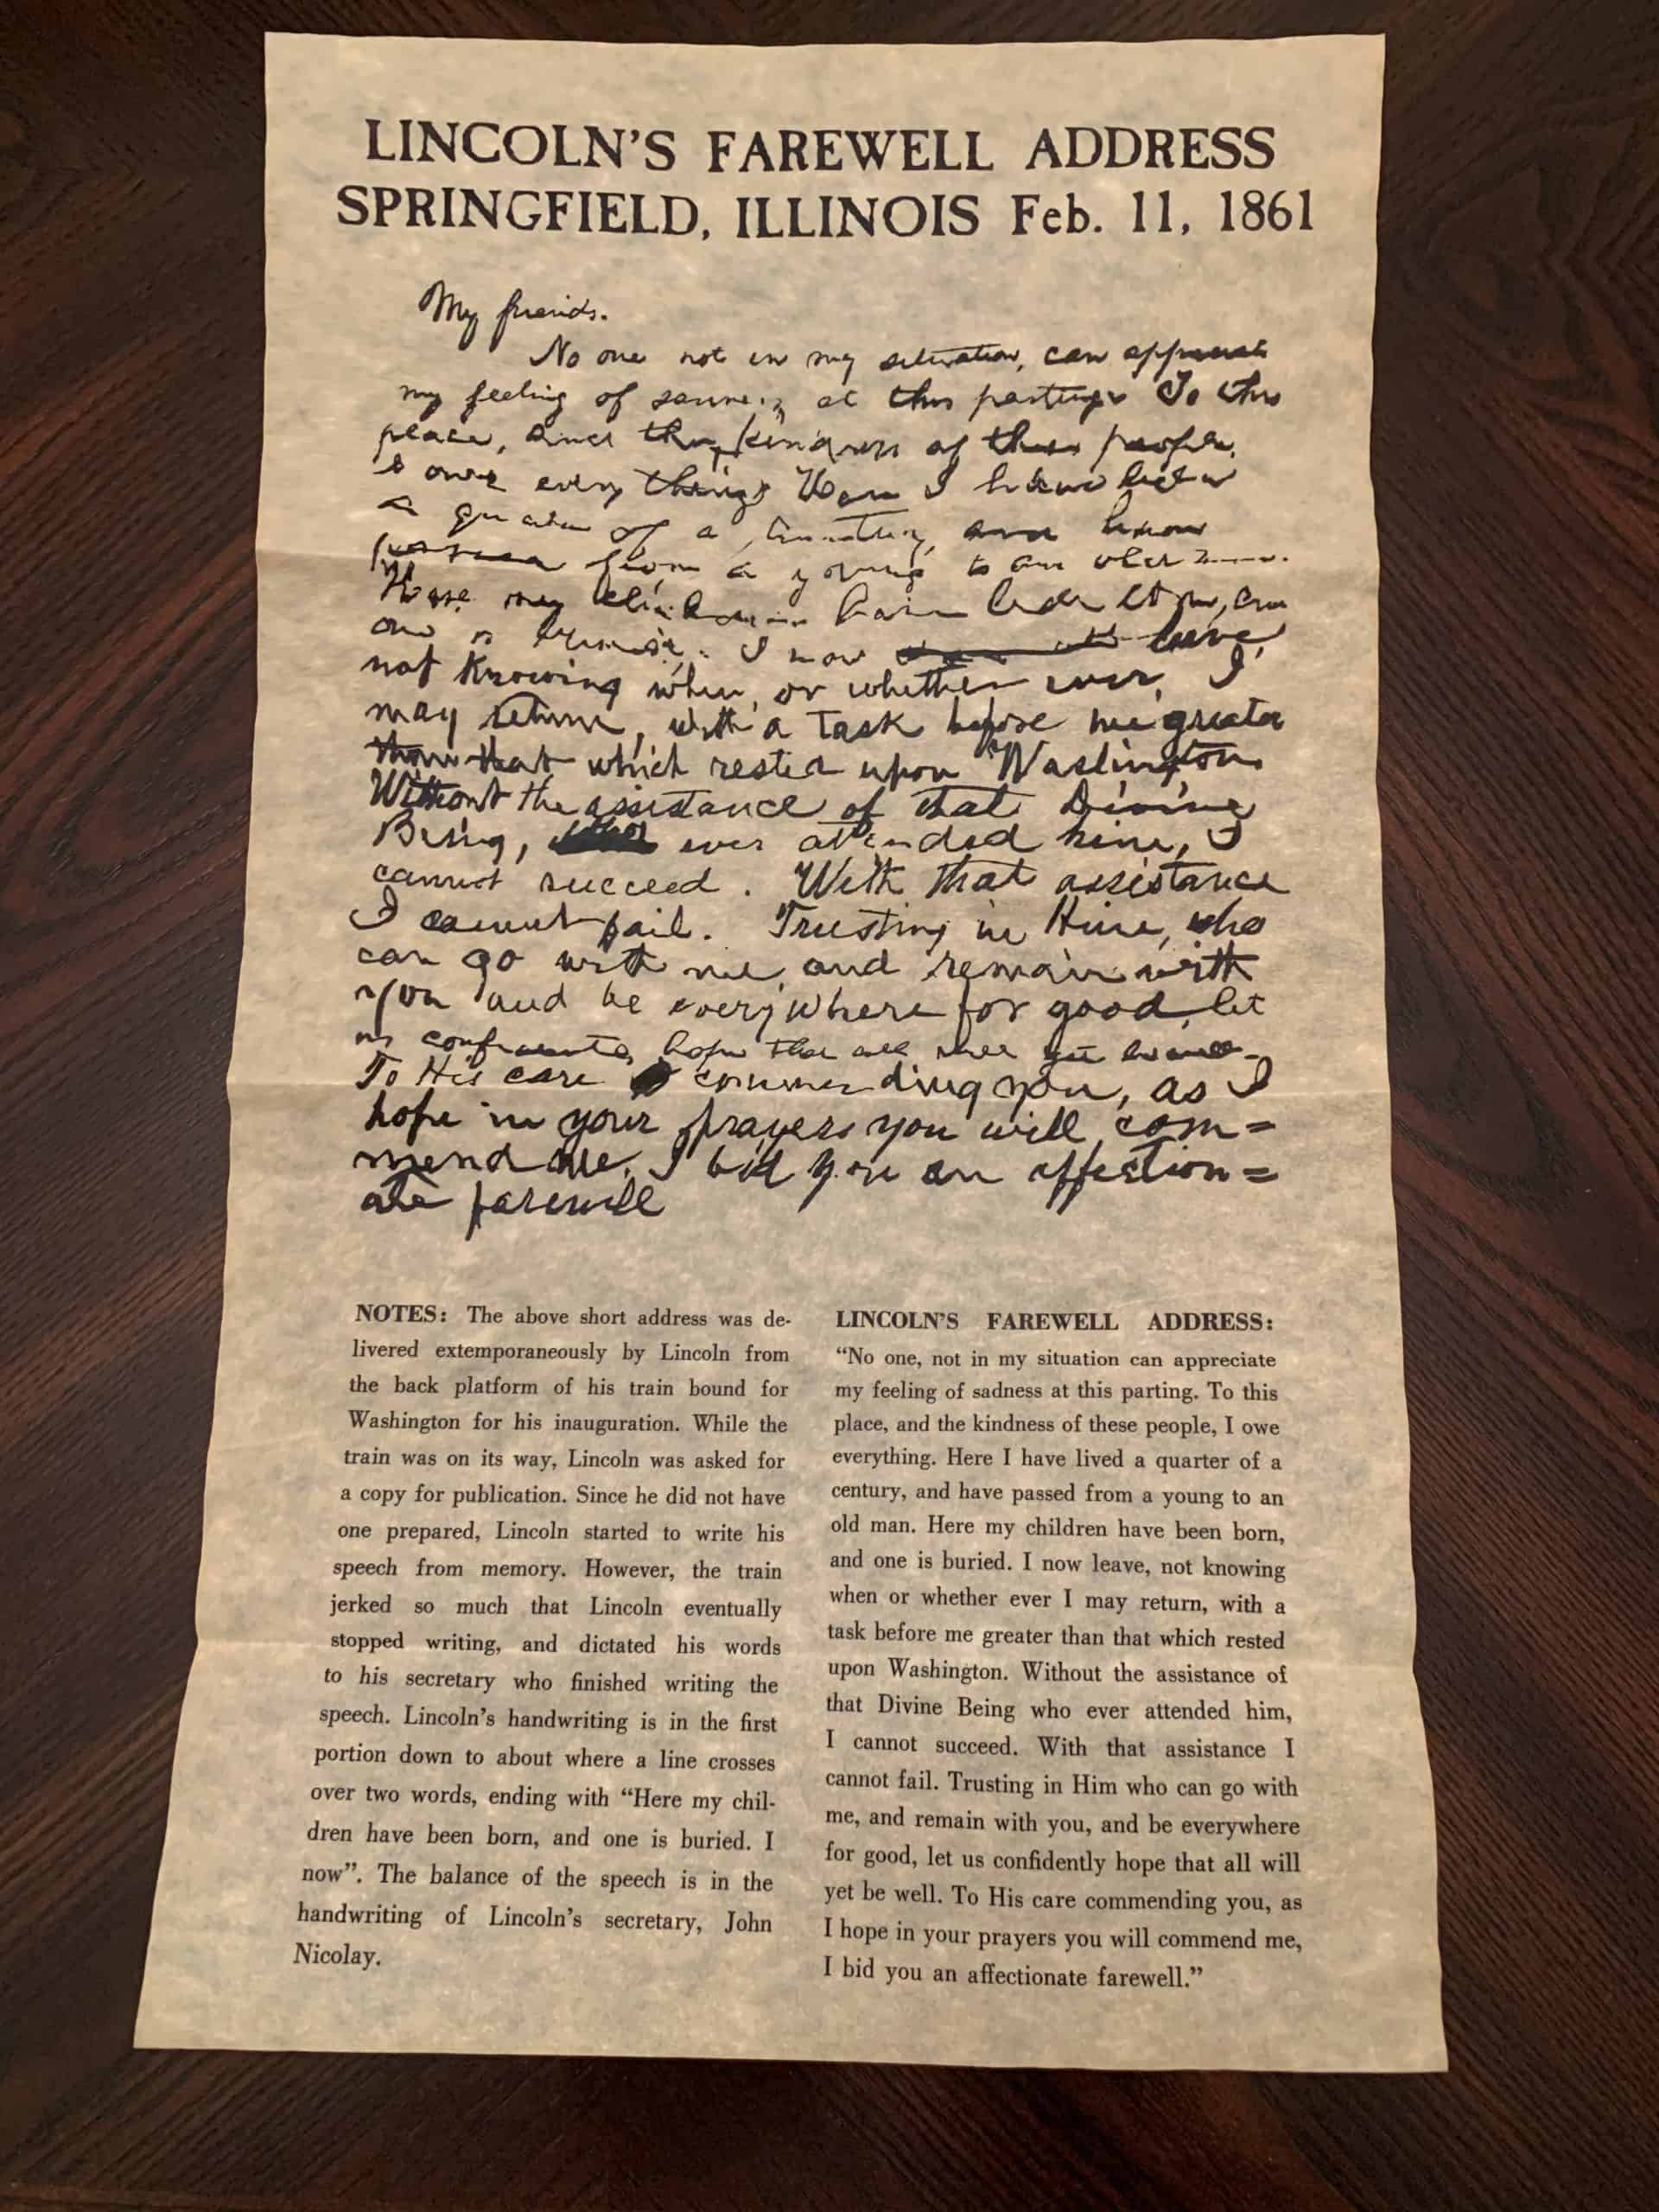 Lincoln's Farewell Address At Springfield, Illinois 1861 - Parchment replica